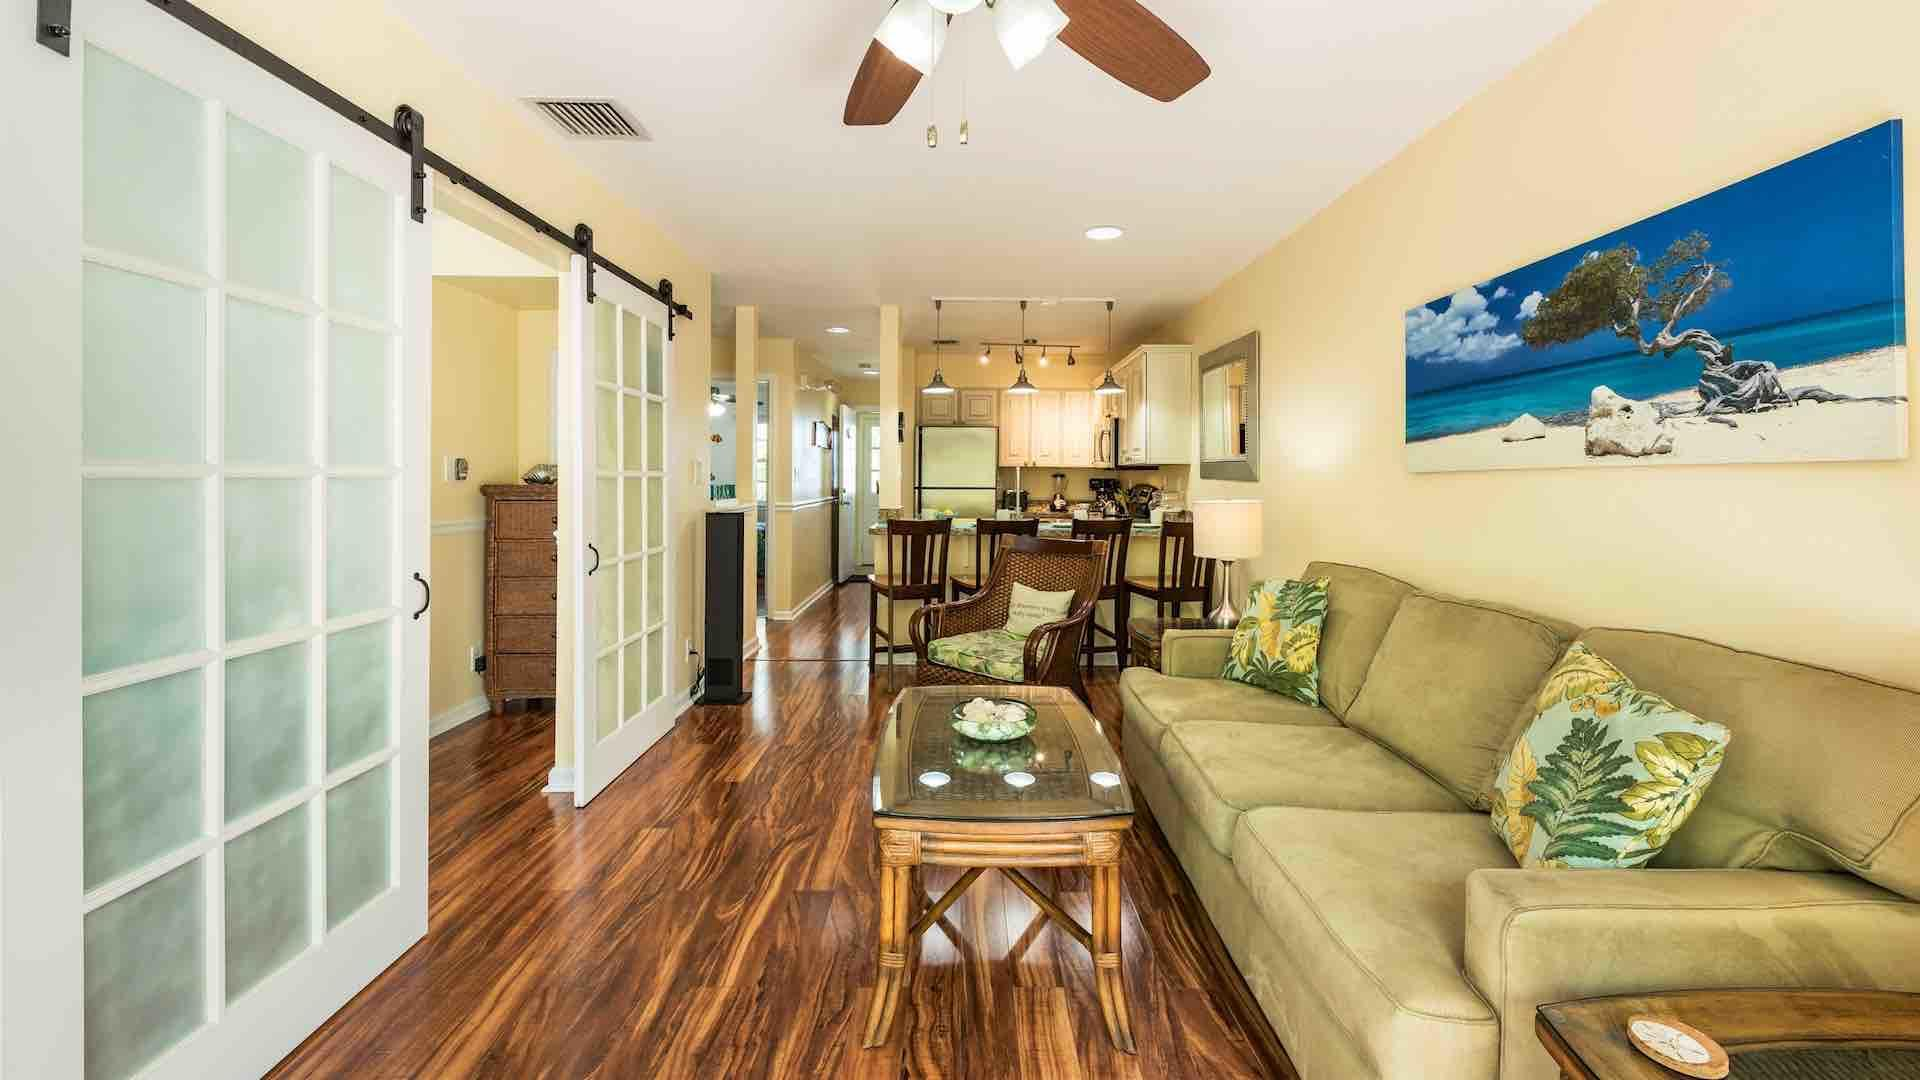 The living room has a large flat screen TV and comfortable seating options...